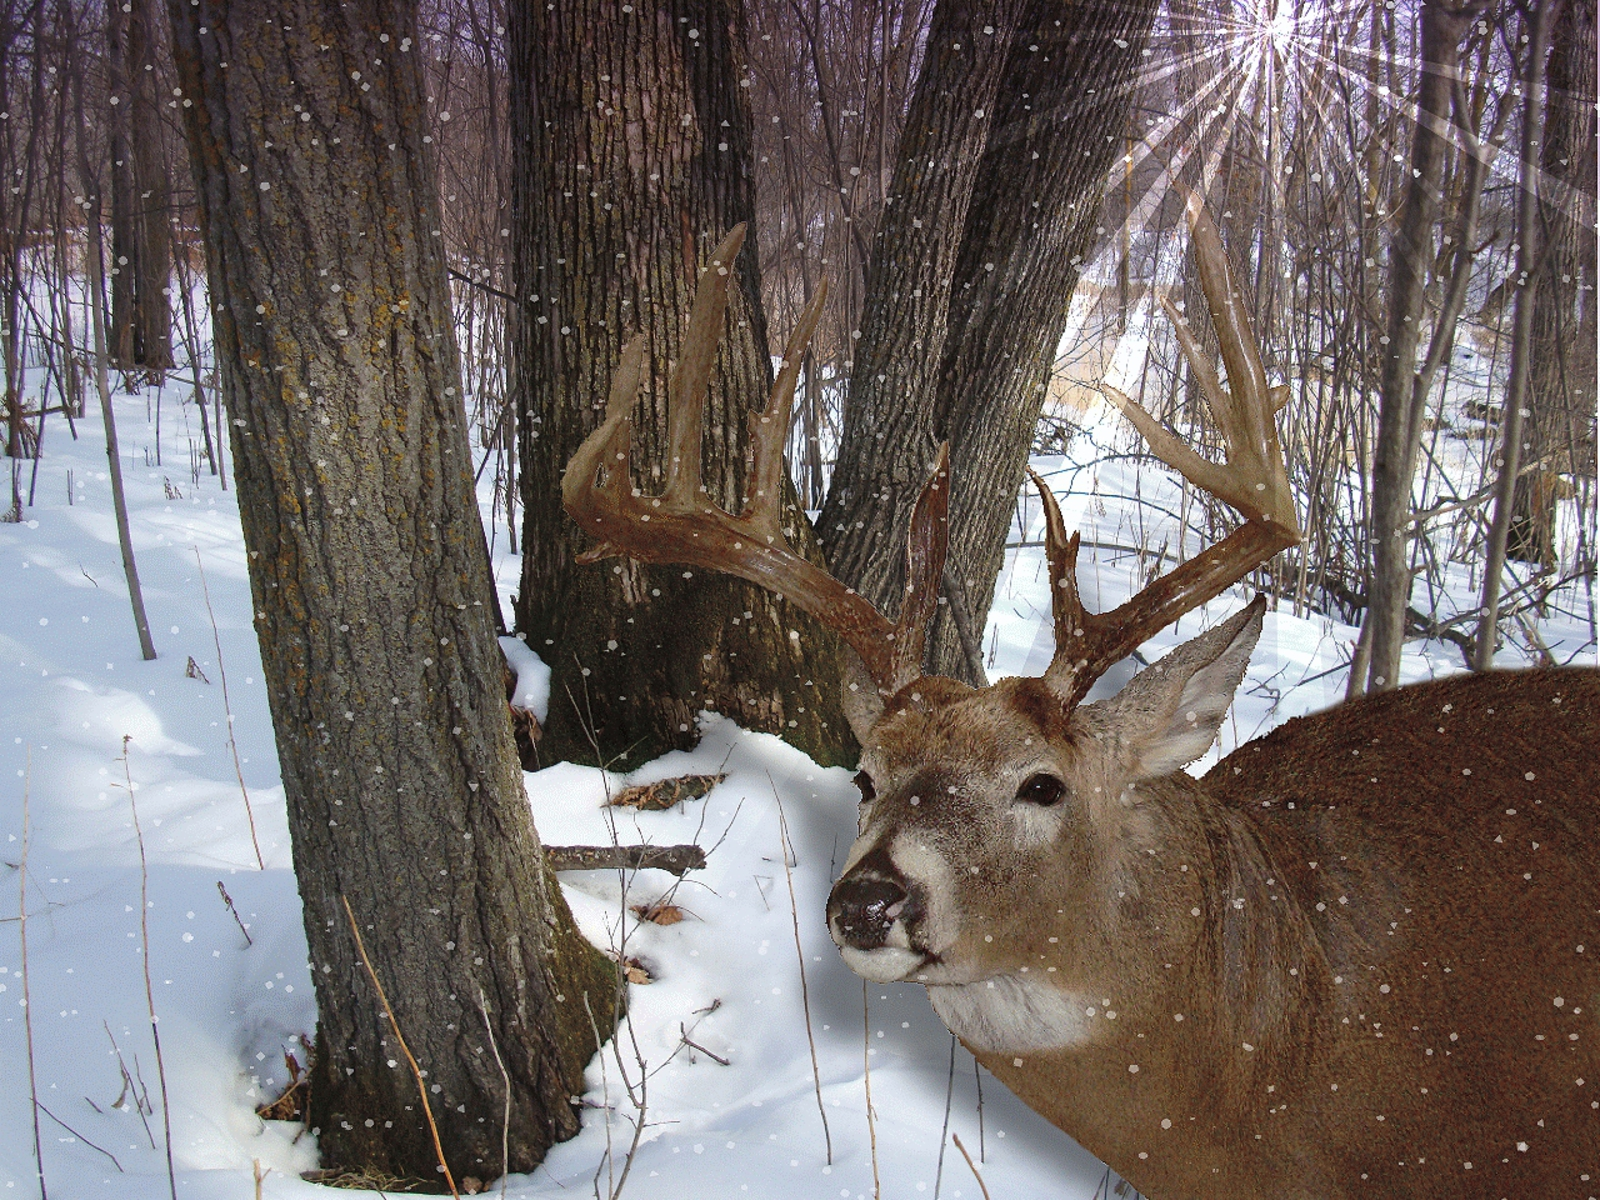 And Wallpapers High Definition deer wallpapersHigh Definition deer 1600x1200